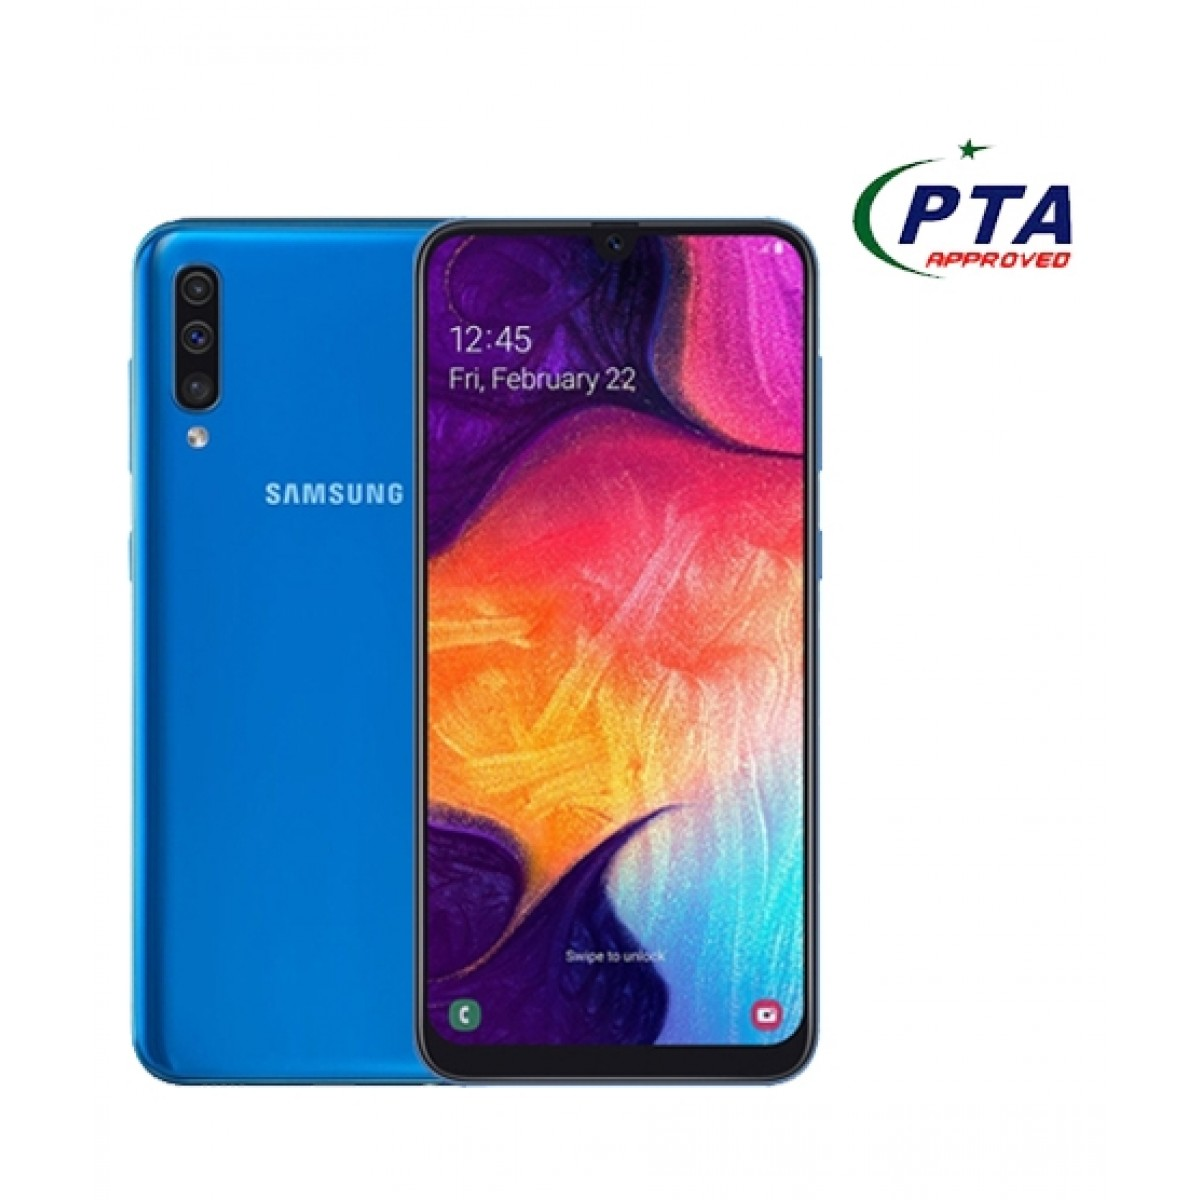 Samsung Galaxy A50 128GB 4GB RAM Dual Sim Blue - Official Warranty